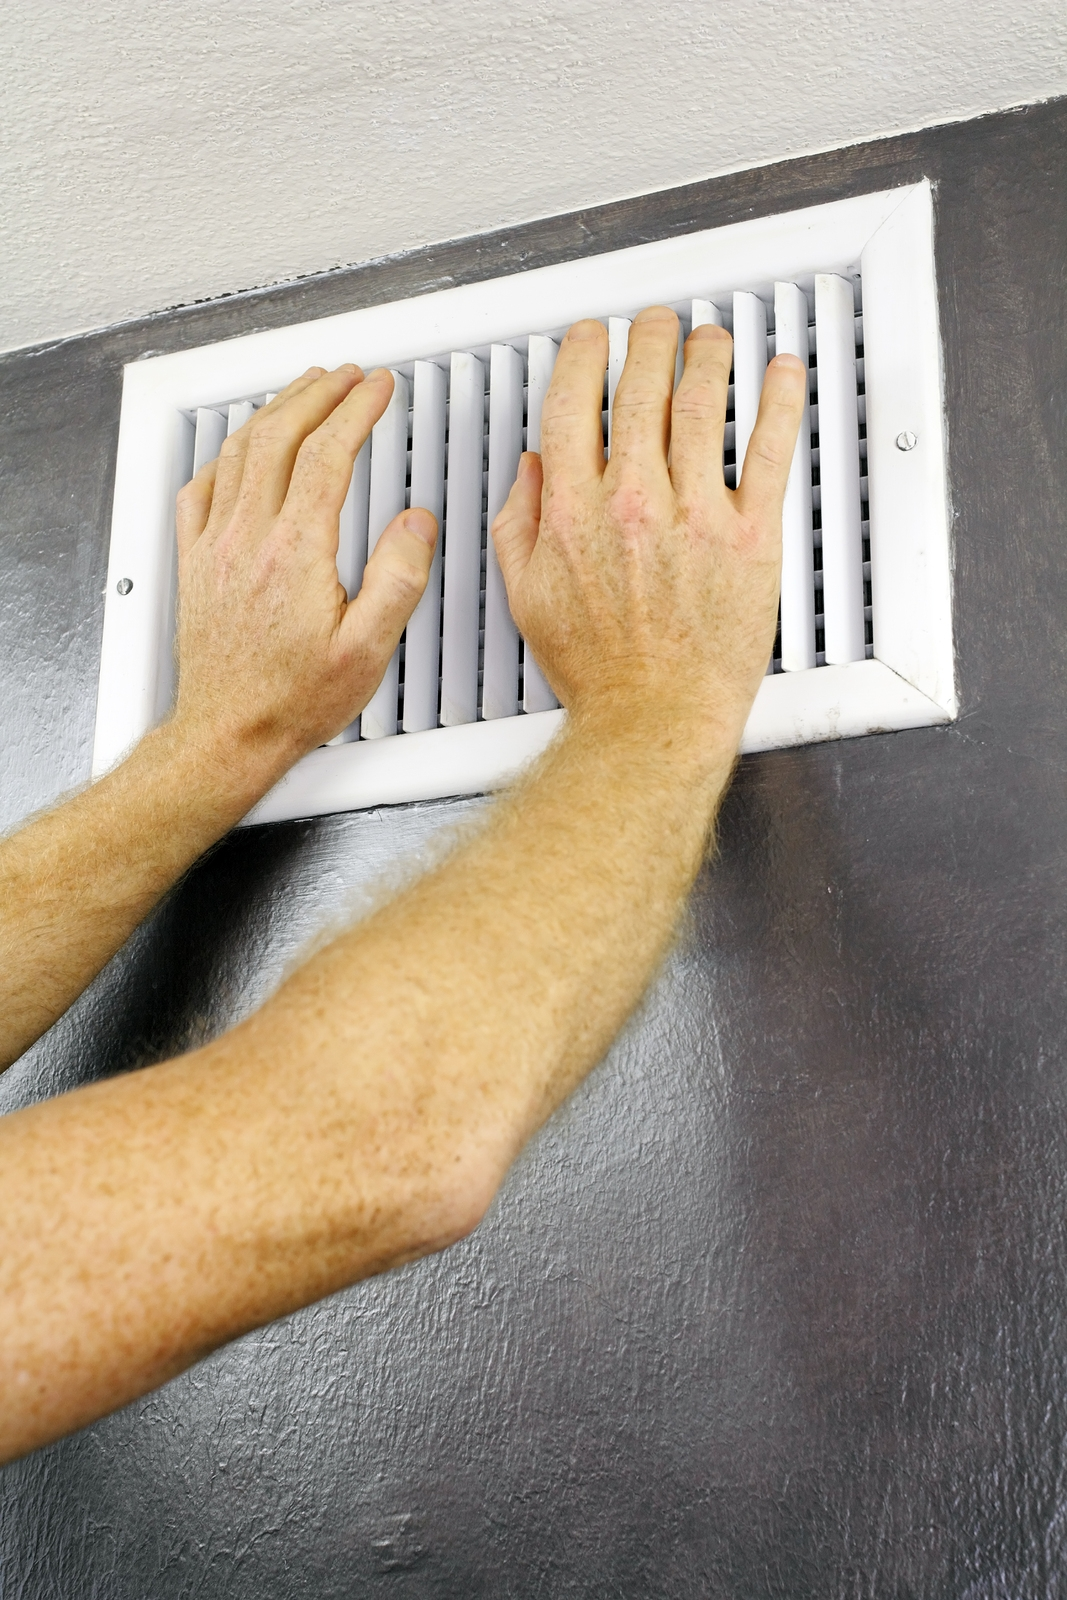 bigstock-Hands-On-An-Air-Vent-116268509